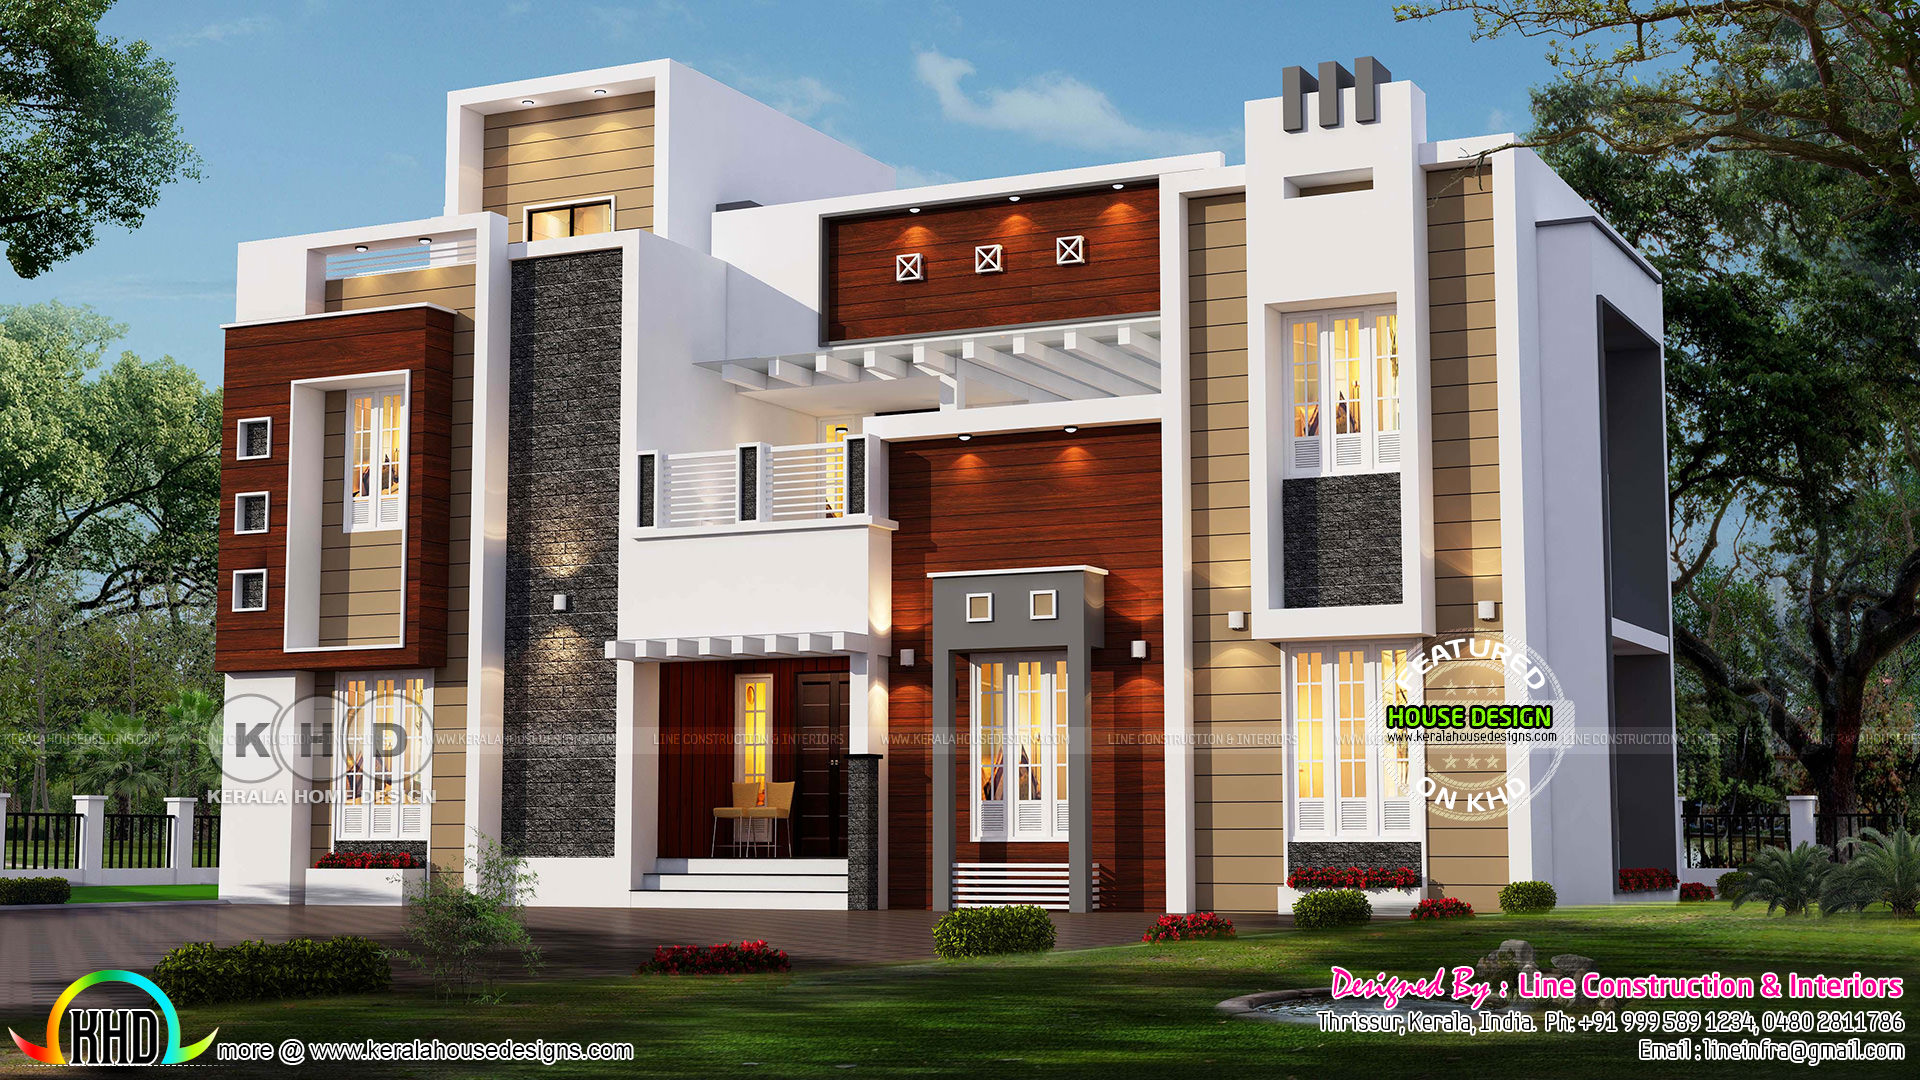 Luxurious decorative contemporary home & 2017 - Kerala home design and floor plans